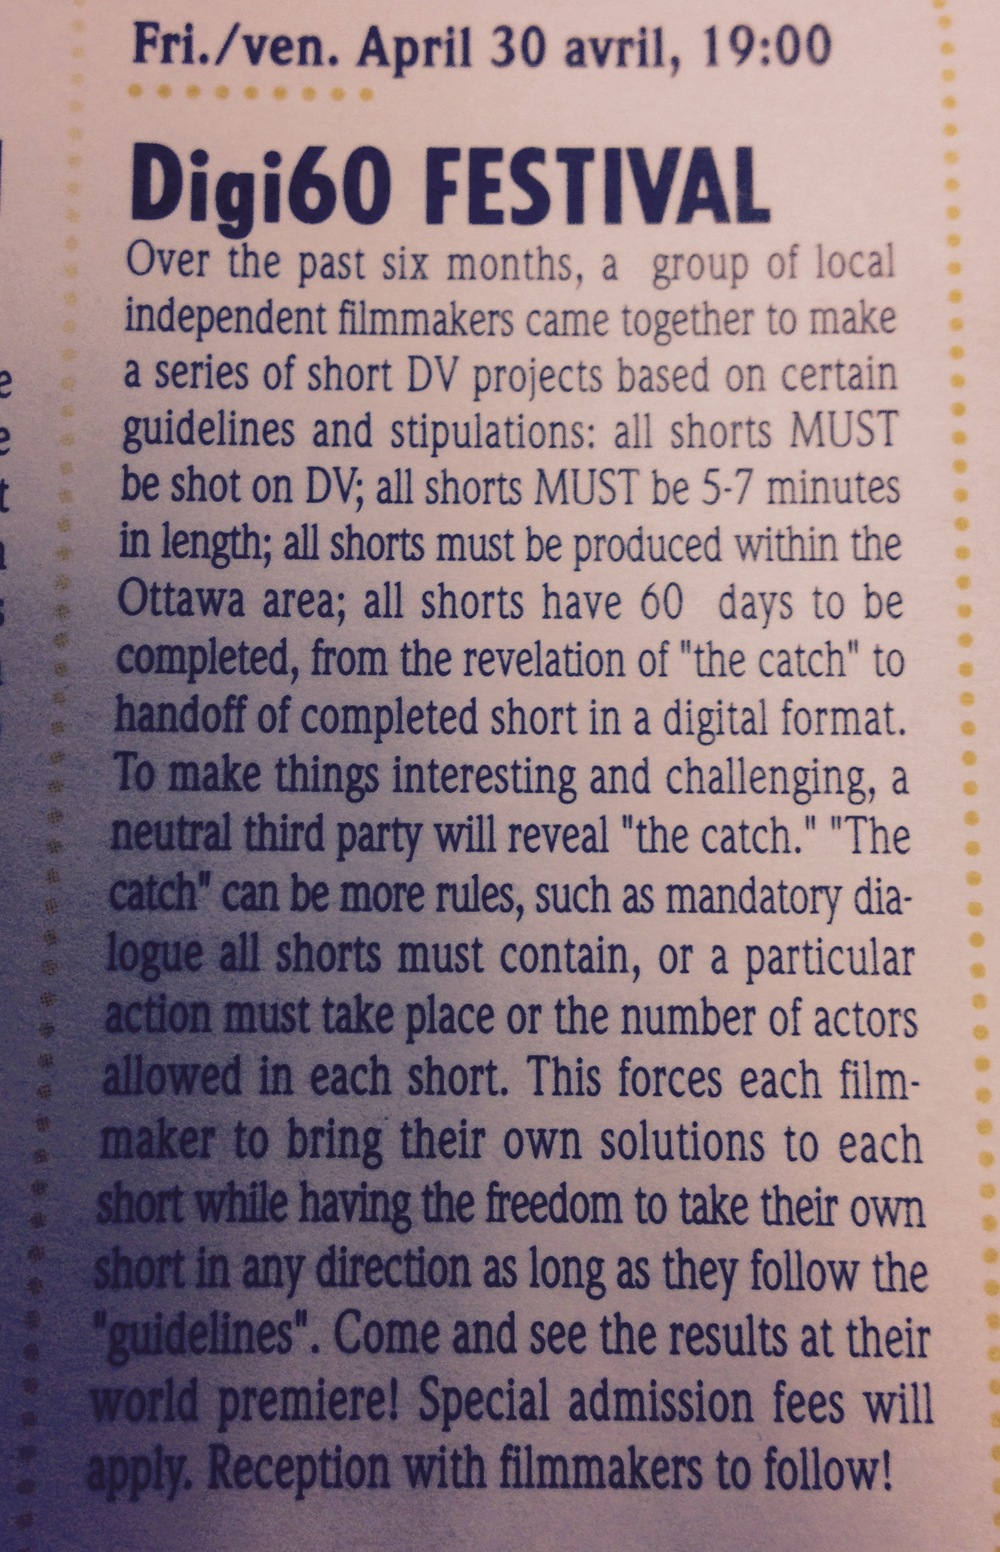 April 2004 Canadian Film Institute News Letter announcing the first Digi60 Filmmakers Festival in Ottawa, ON. Copyright the Canadian Film Institute Archives.